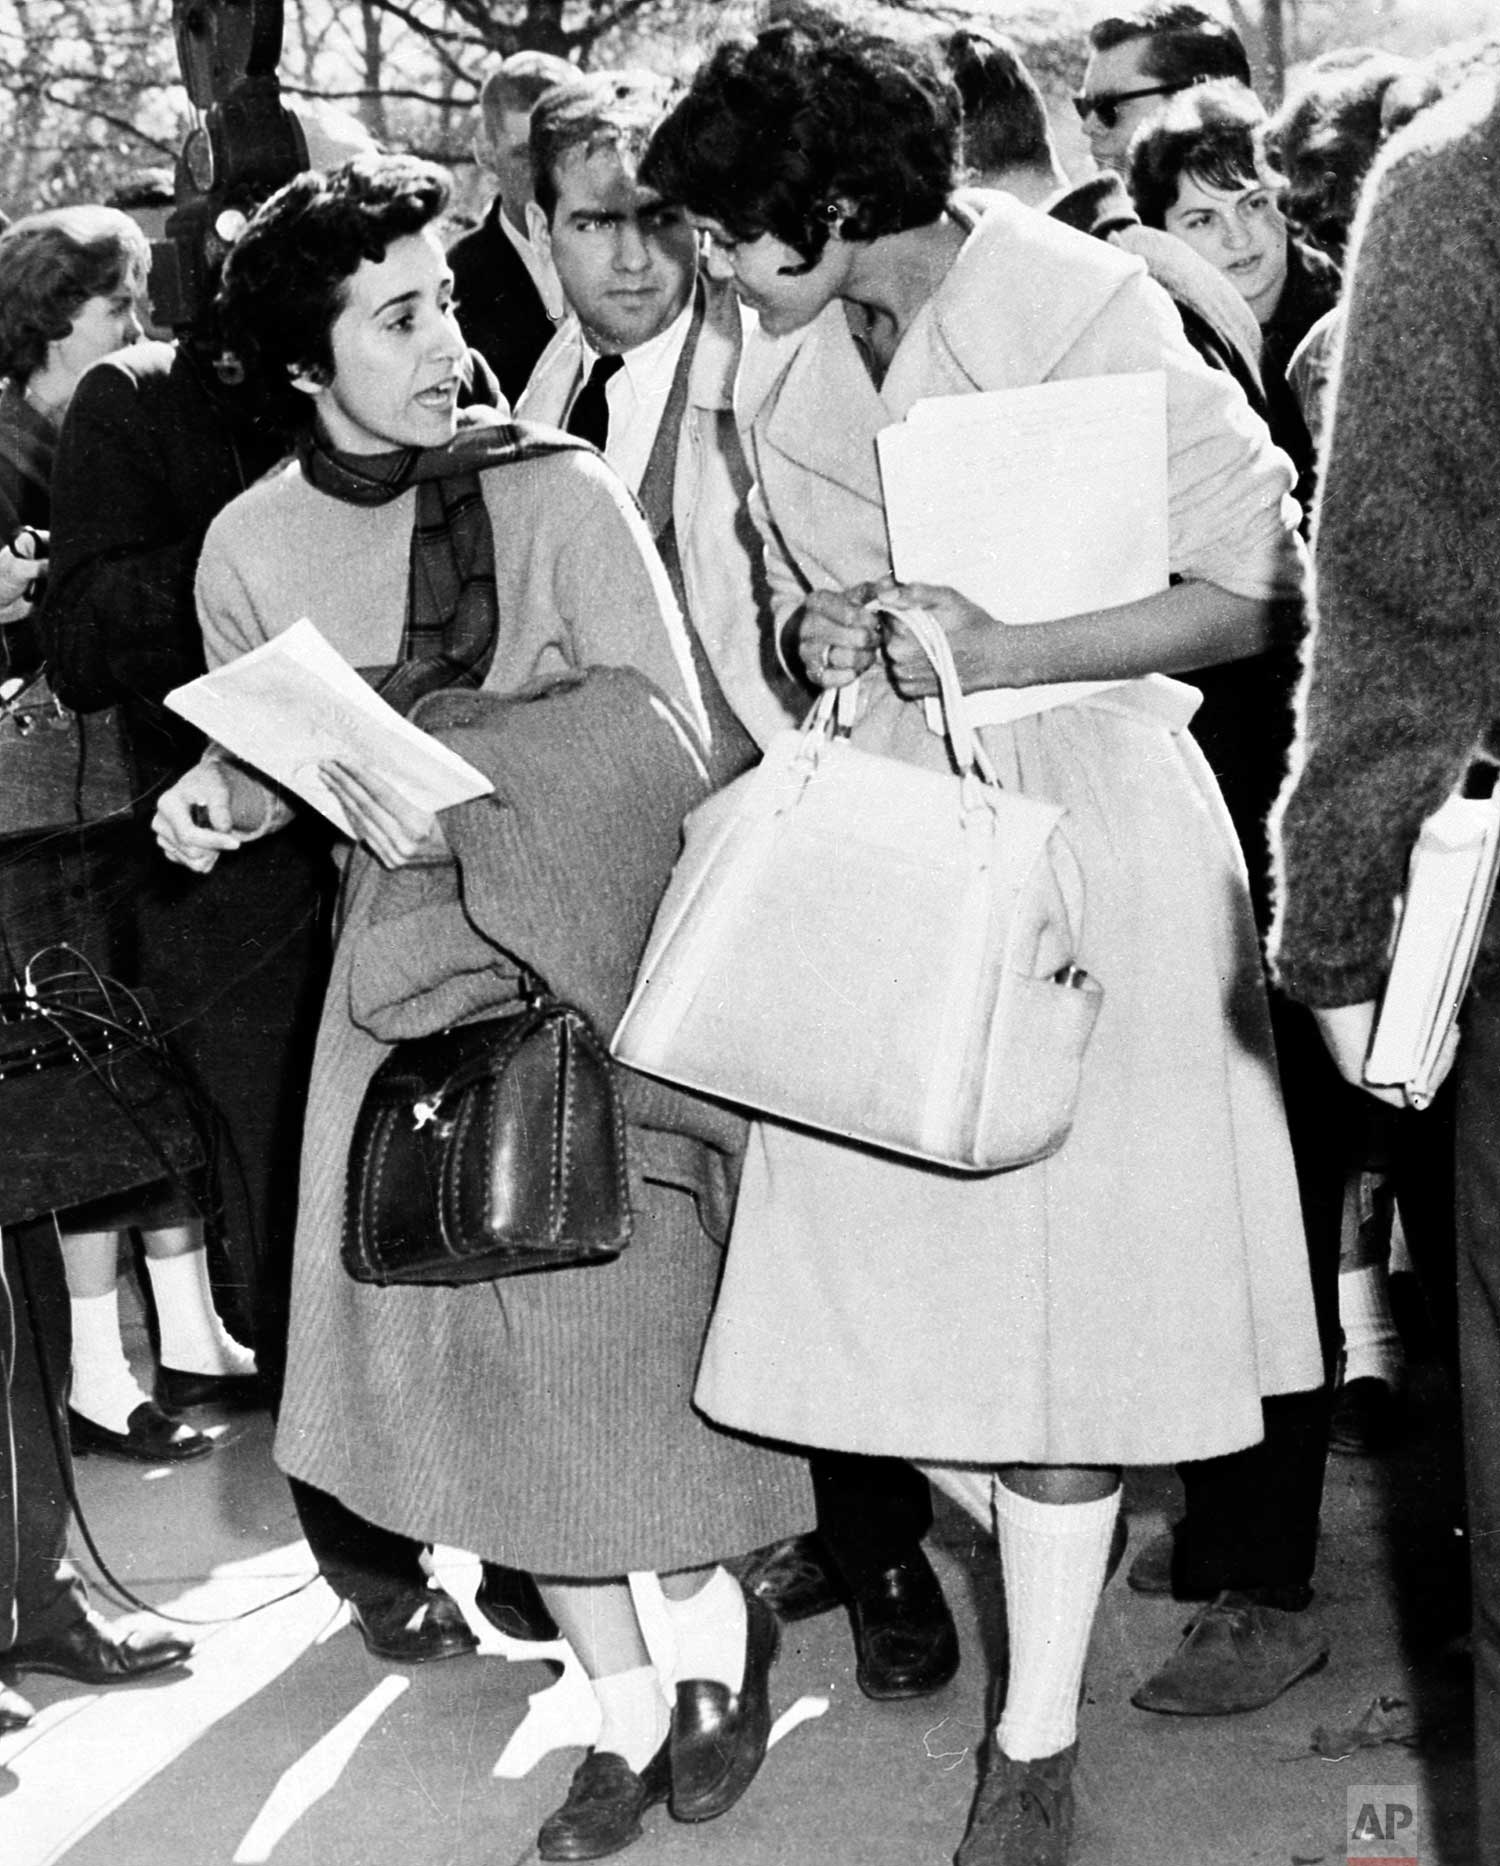 """Atlanta Associated Press staffer Kathryn Johnson, left, donned bobby socks and a sweater to obtain the only eyewitness story of Charlayne Hunter's first day of class at the University of Georgia, Jan. 11, 1961. School officials stopped all other reporters at the door but Kathryn was """"just another student."""" Hunter was one of the first two African American students to enroll in the University of Georgia. (AP Photo)"""